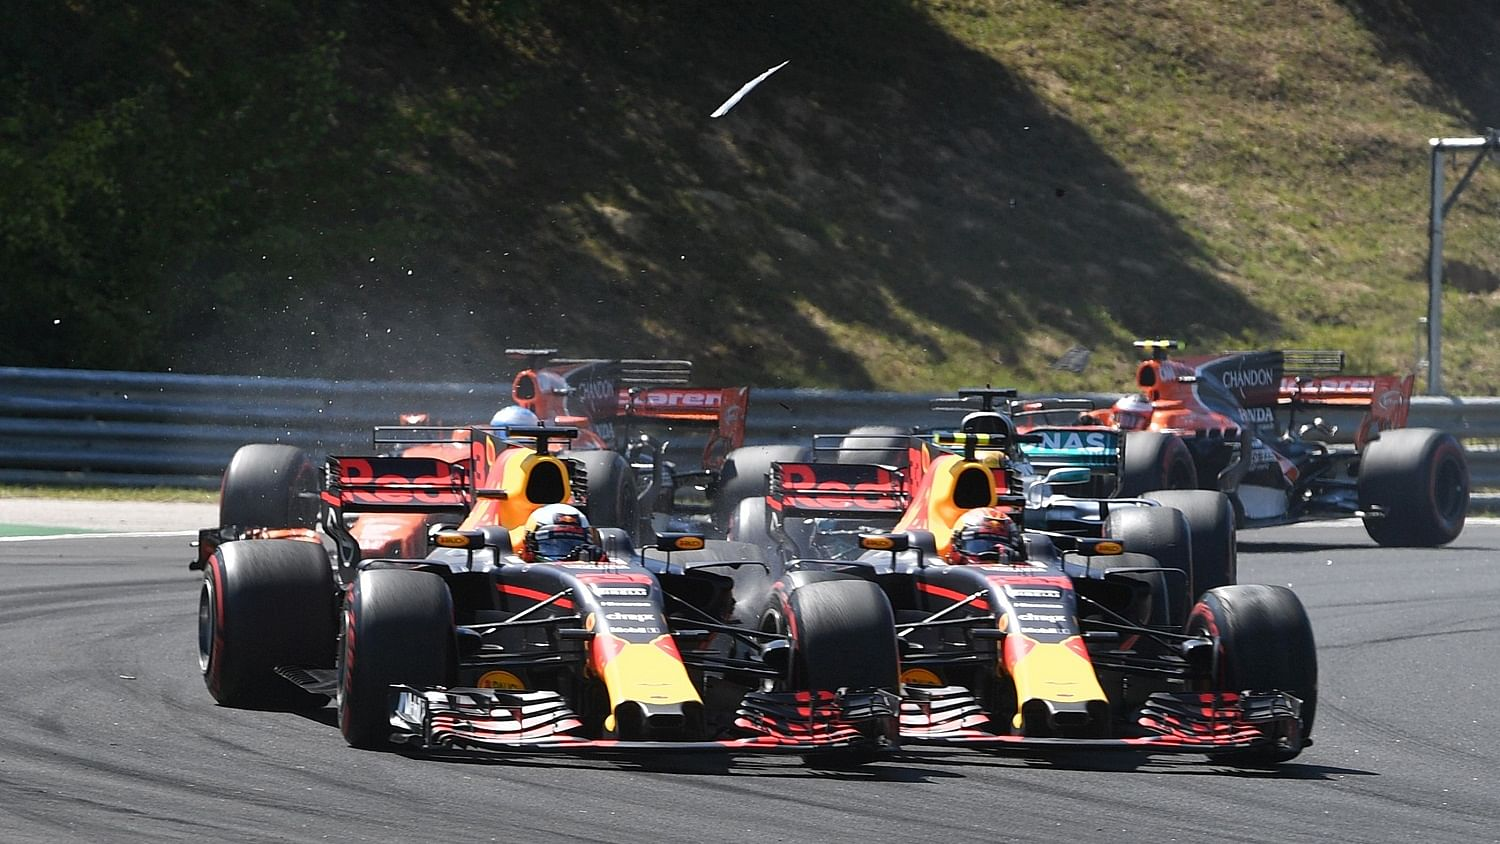 Ricciardo's Beef With His Teammate Has Been Dealt With